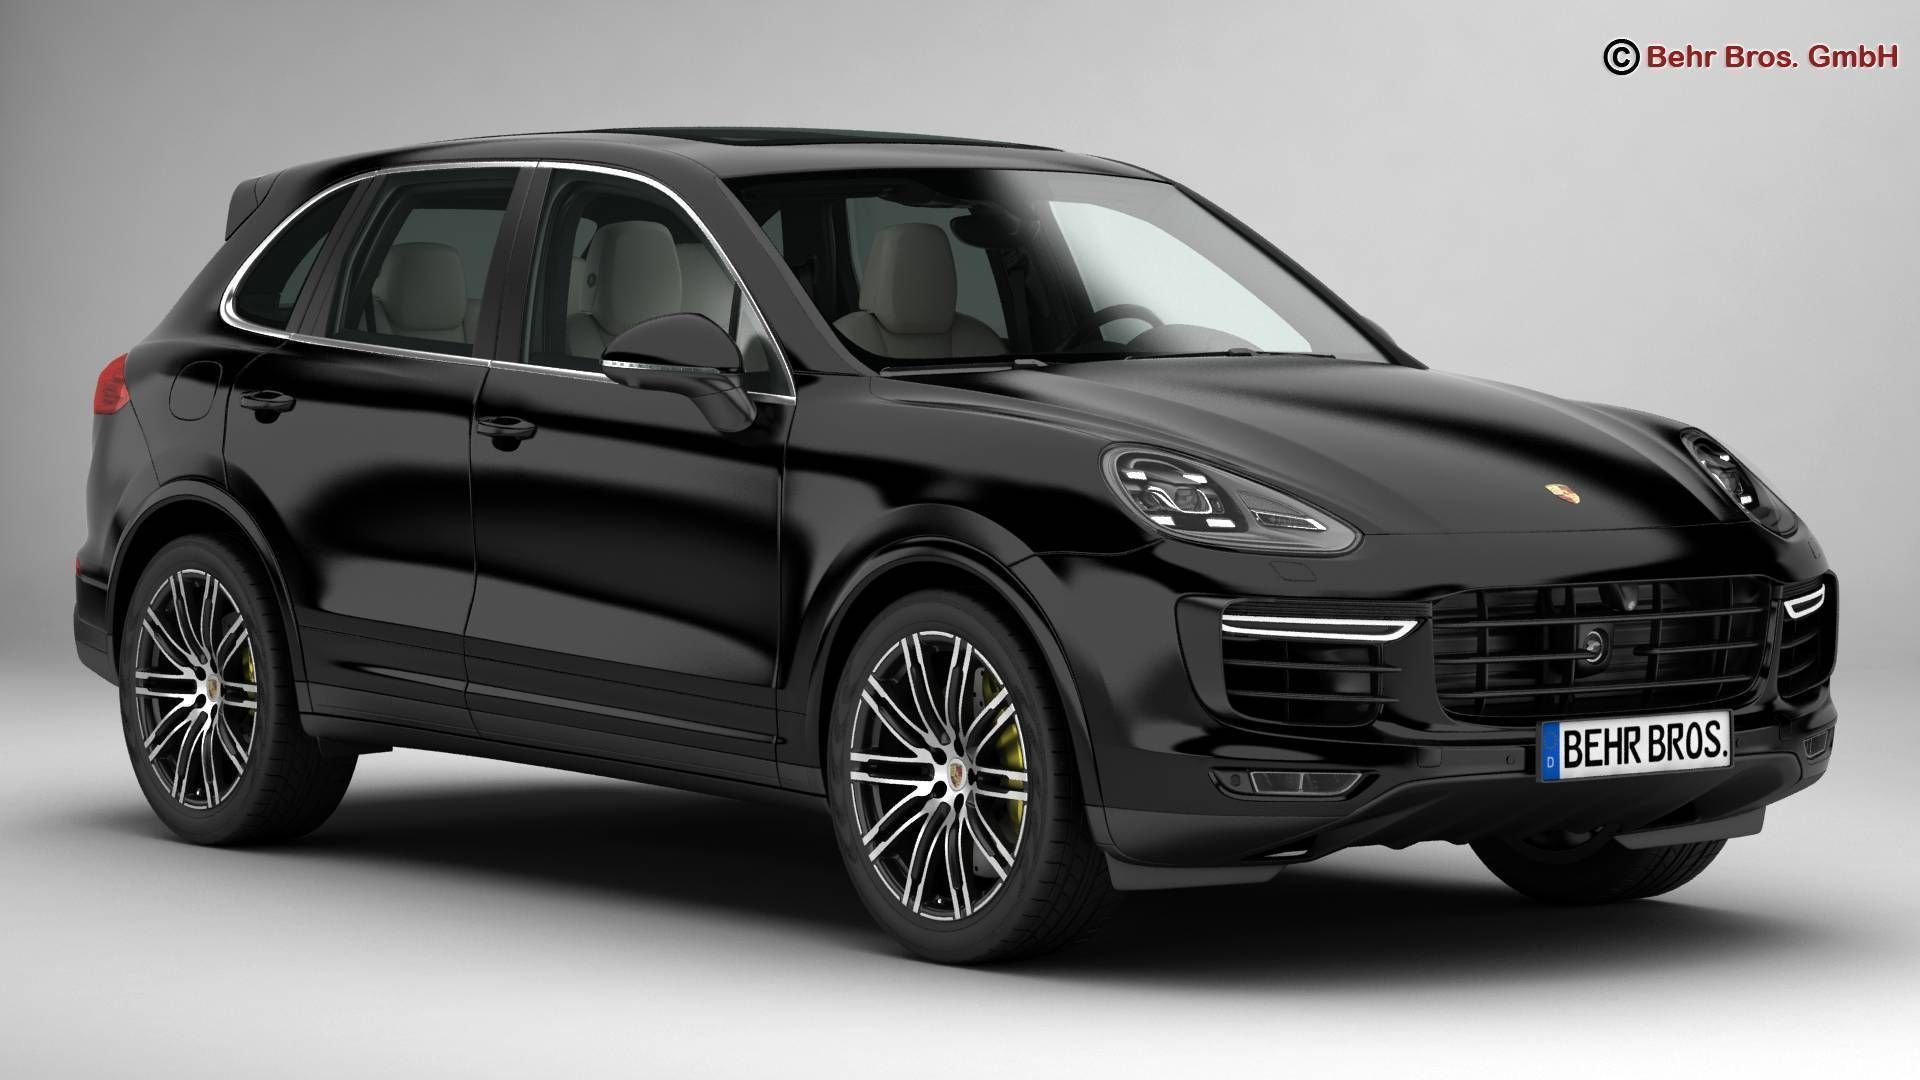 porsche cayenne turbo s 2016 3d model max obj 3ds fbx c4d lwo lw lws. Black Bedroom Furniture Sets. Home Design Ideas